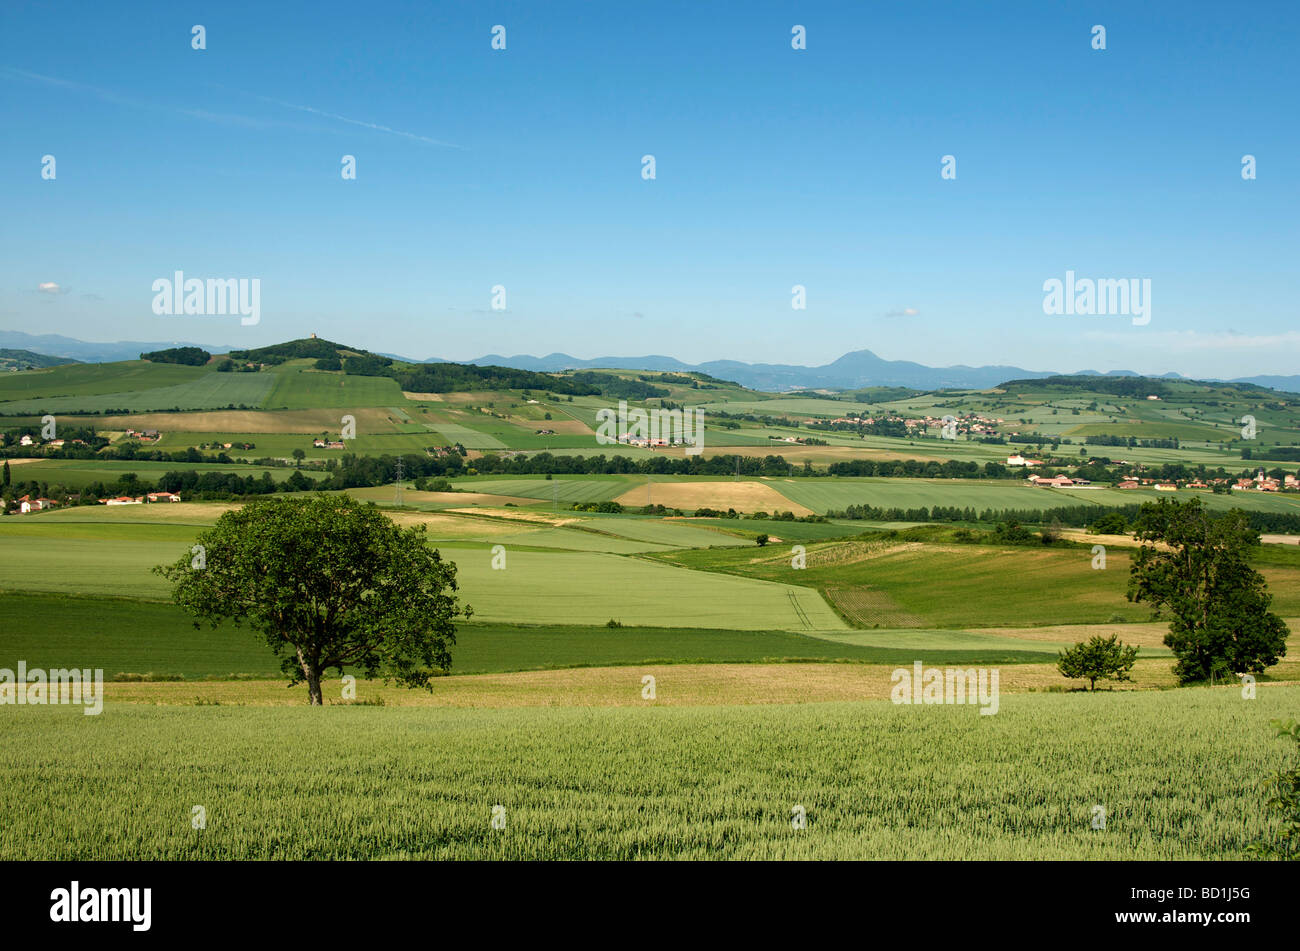 Corn field in the plain of the limagne. Auvergne. France. - Stock Image